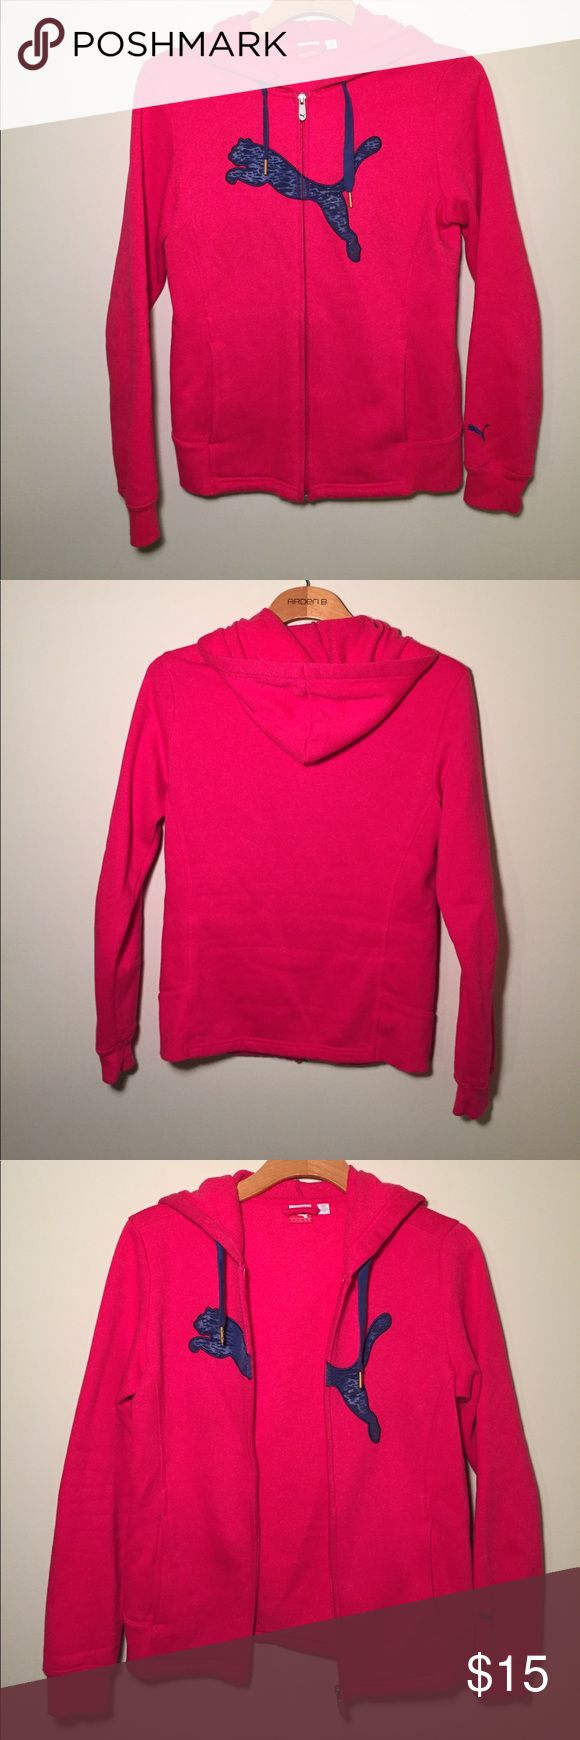 Puma zip-up hoodie size small Pink zip up hoodie. Hoodie has been barely used and is in excellent condition. It's 22 1/2 inches long and sleeves are 24 inches long. Puma Tops Sweatshirts & Hoodies